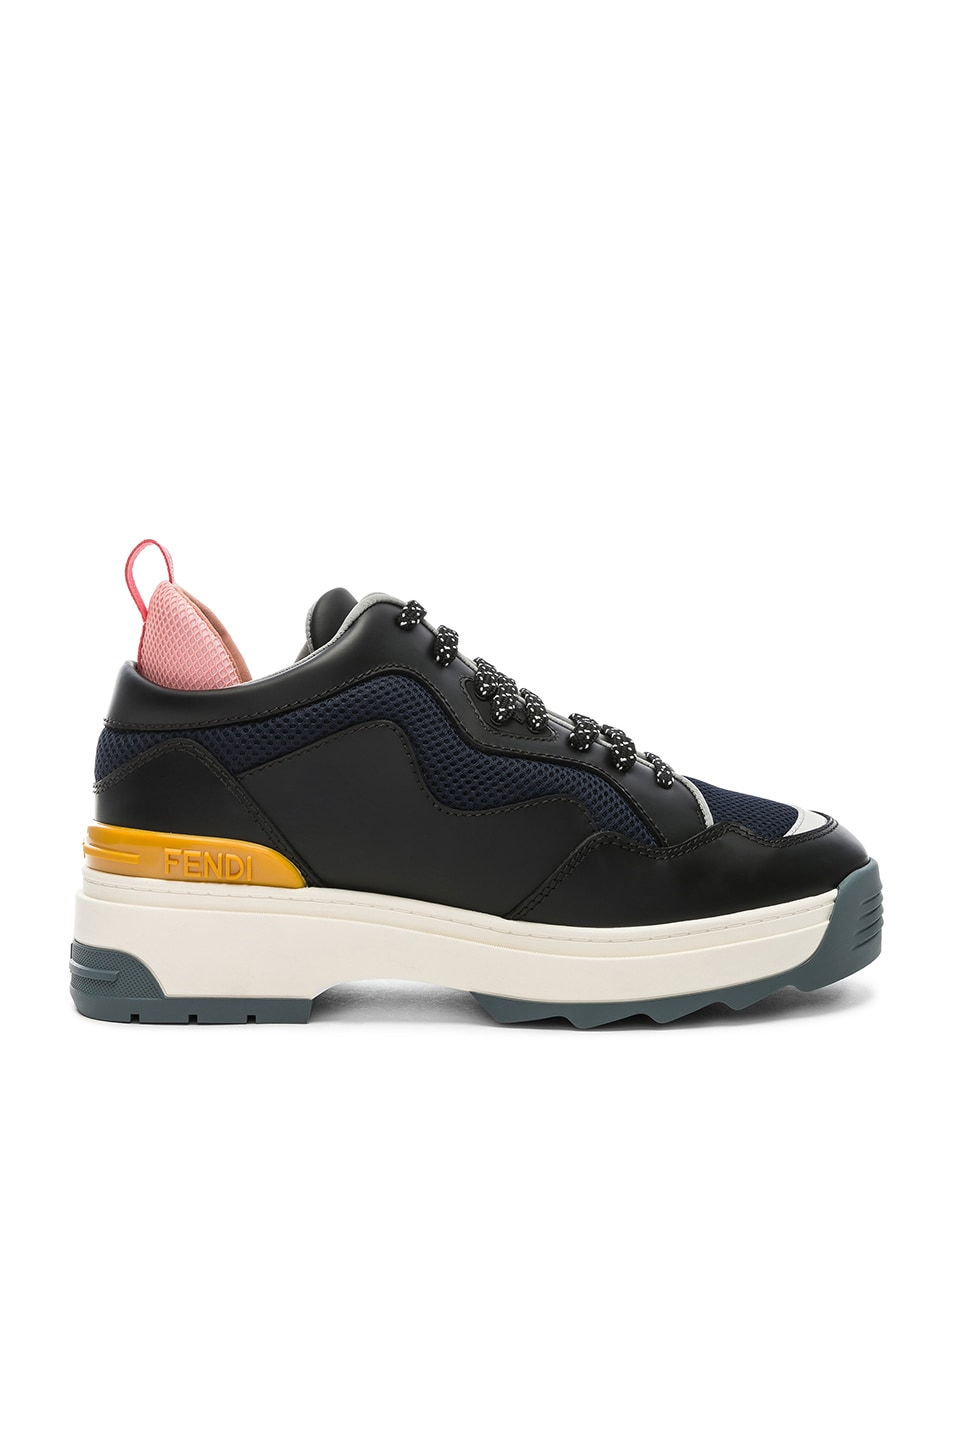 Image 1 of Fendi T-Rex Sneakers in Black